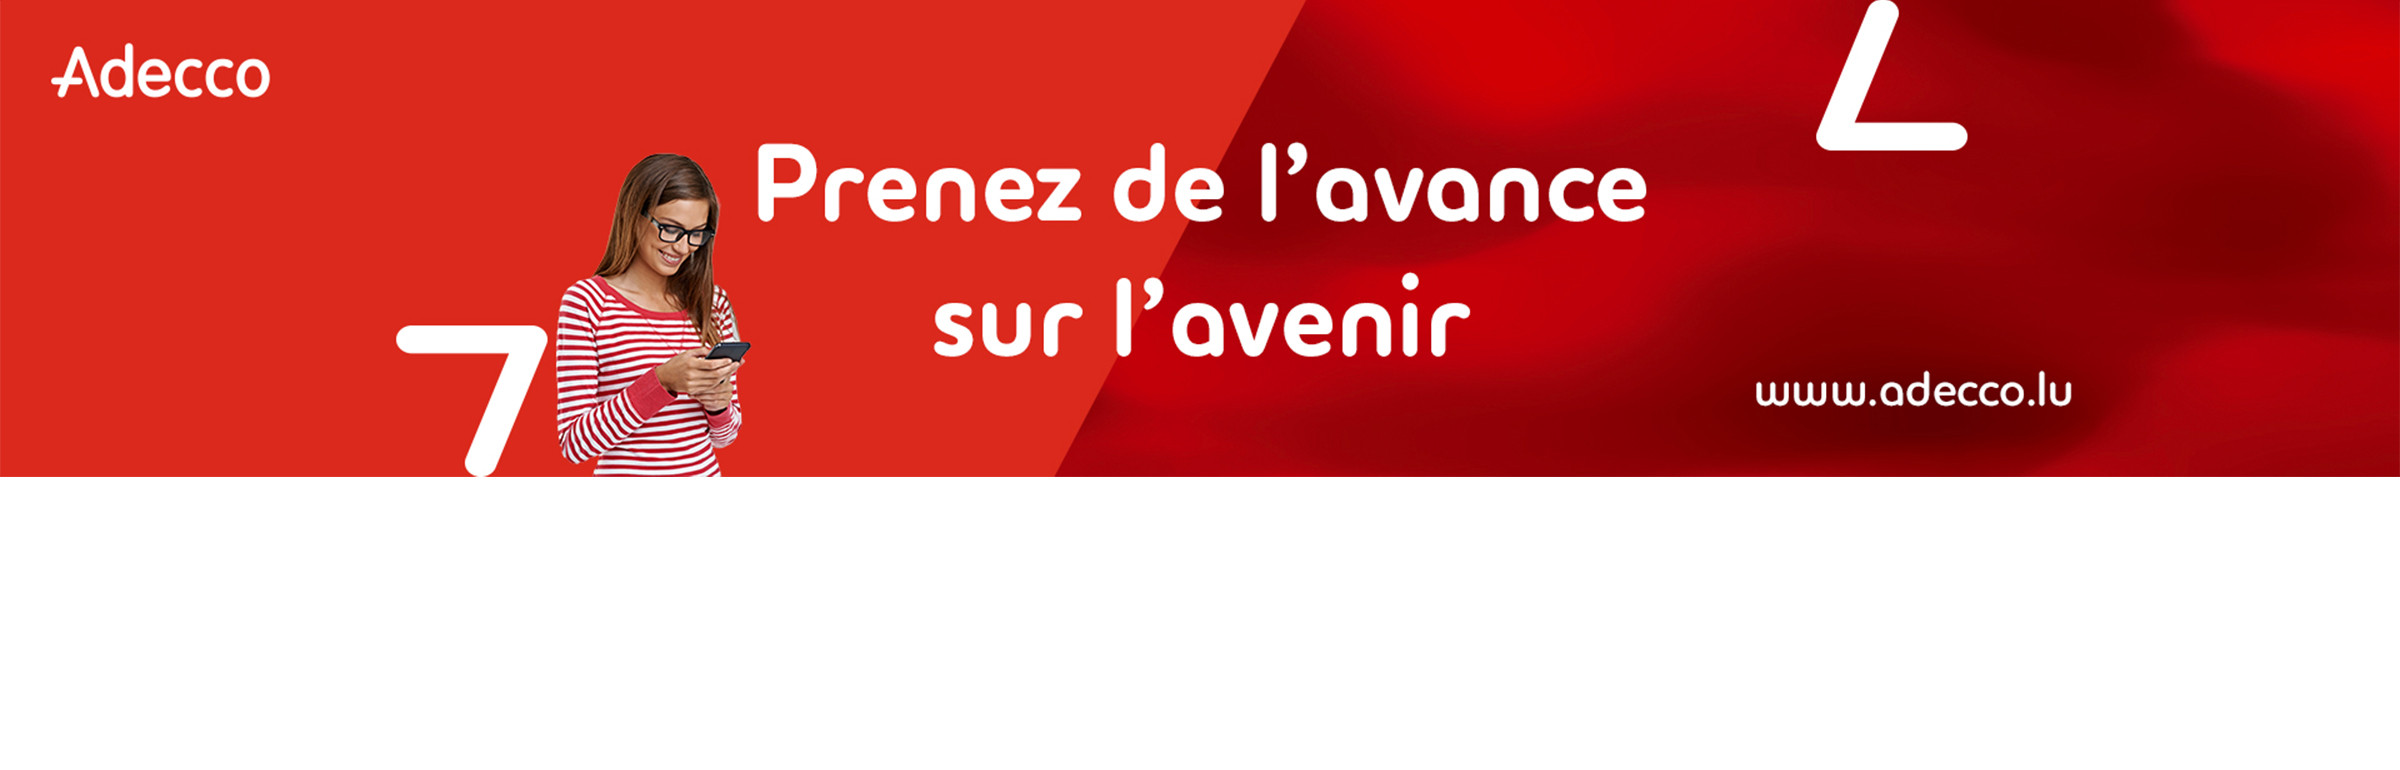 Banner Adecco